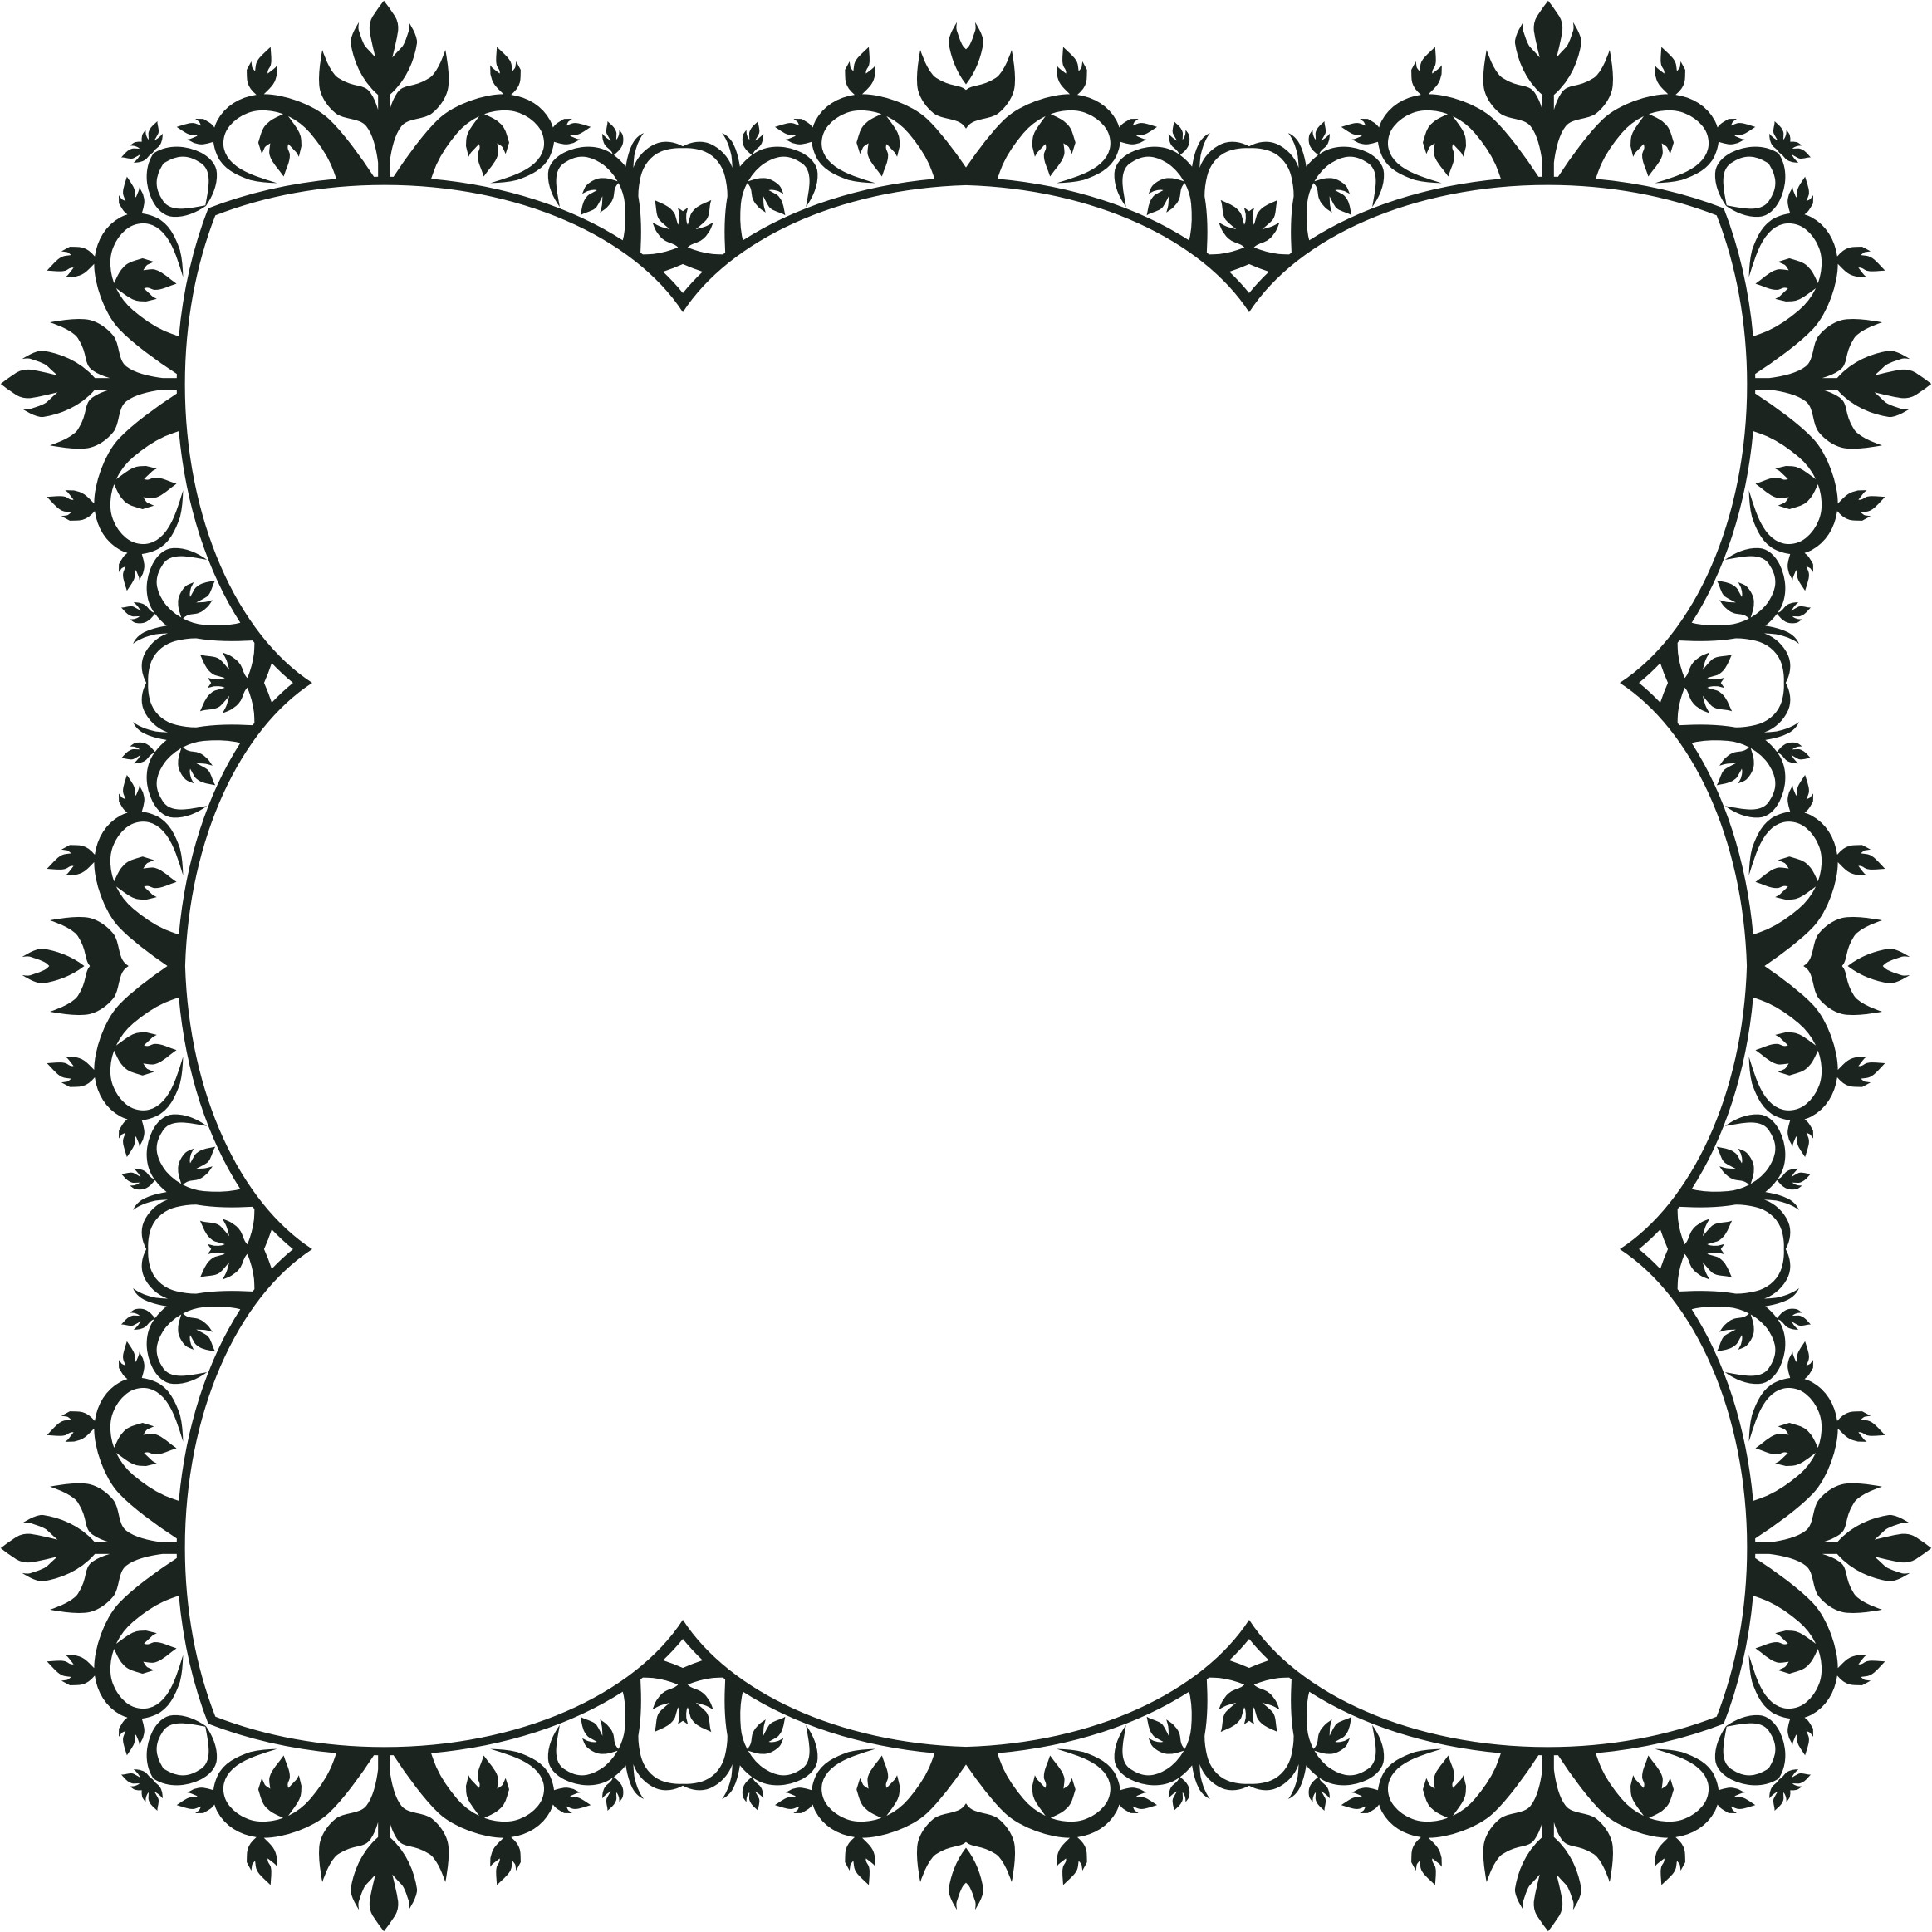 Ornamental frame png. Clipart ornament extended big